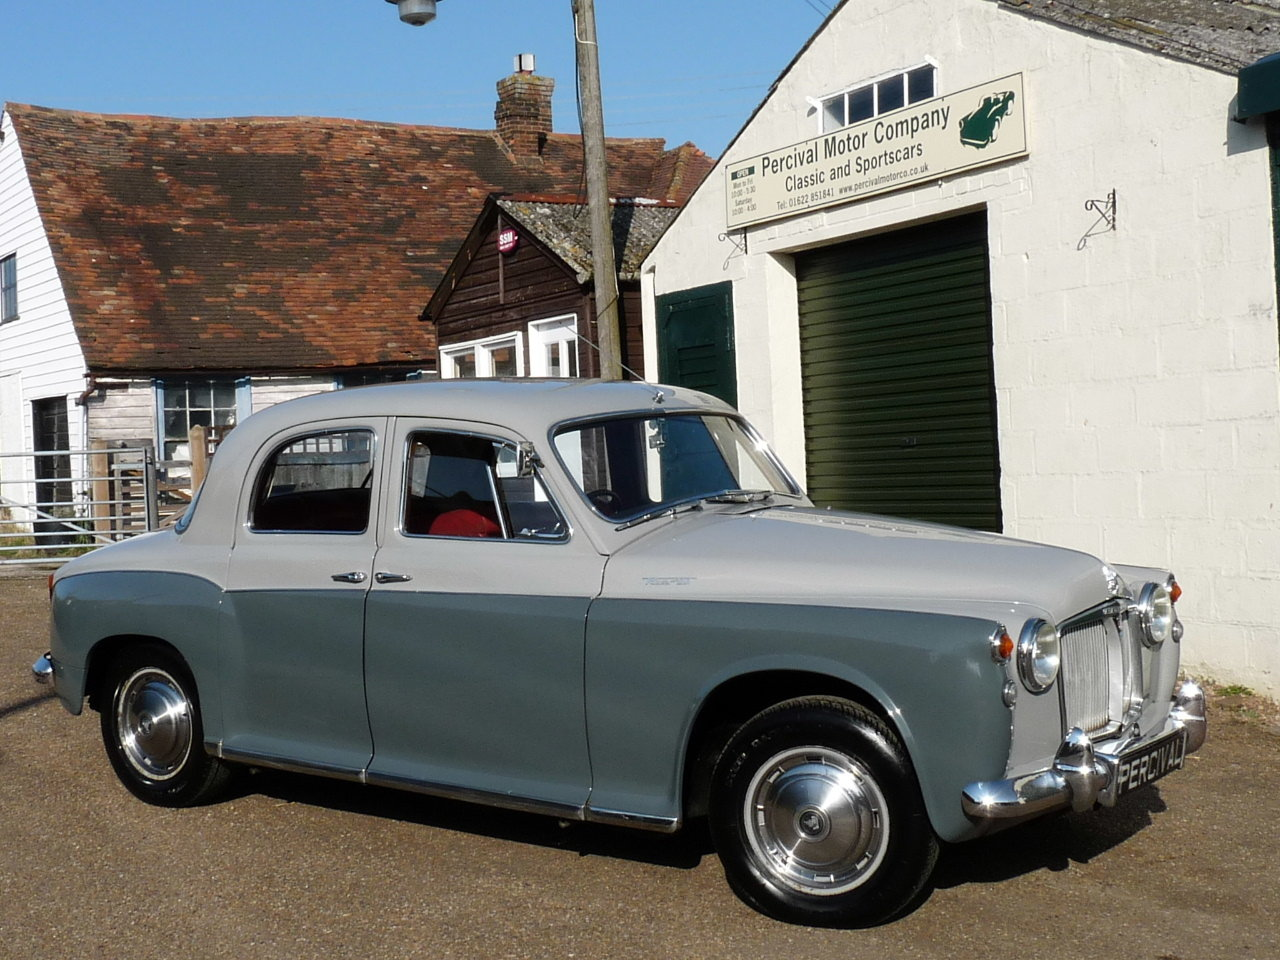 1960 Rover 100 P4, 3.0 litre Rover P5 engine fitted, Sold SOLD (picture 4 of 6)